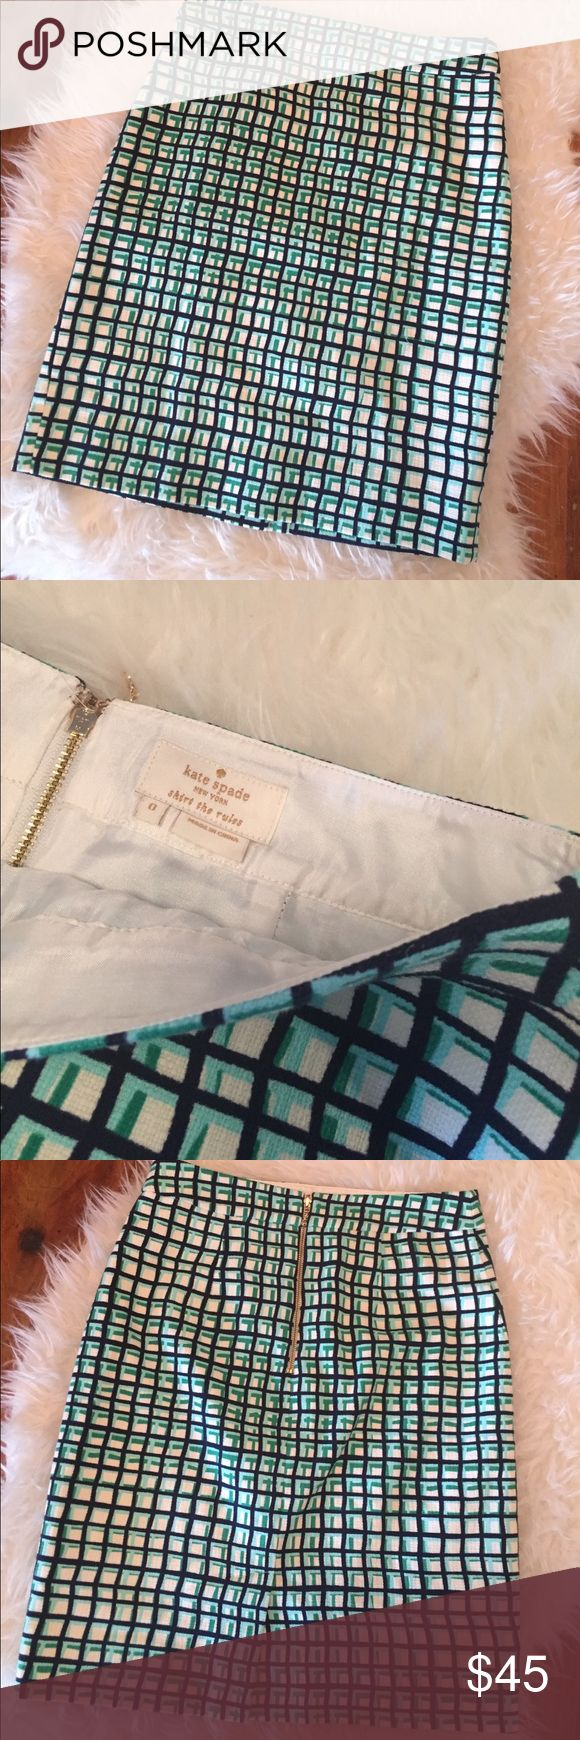 Kate Spade Pencil Skirt Like new Kate Spade pencil skirt.  Navy, teal, and green grid print with cream background.  95% cotton, 5% elastane.  Gold zipper, fully lined.  No flaws! kate spade Skirts Pencil